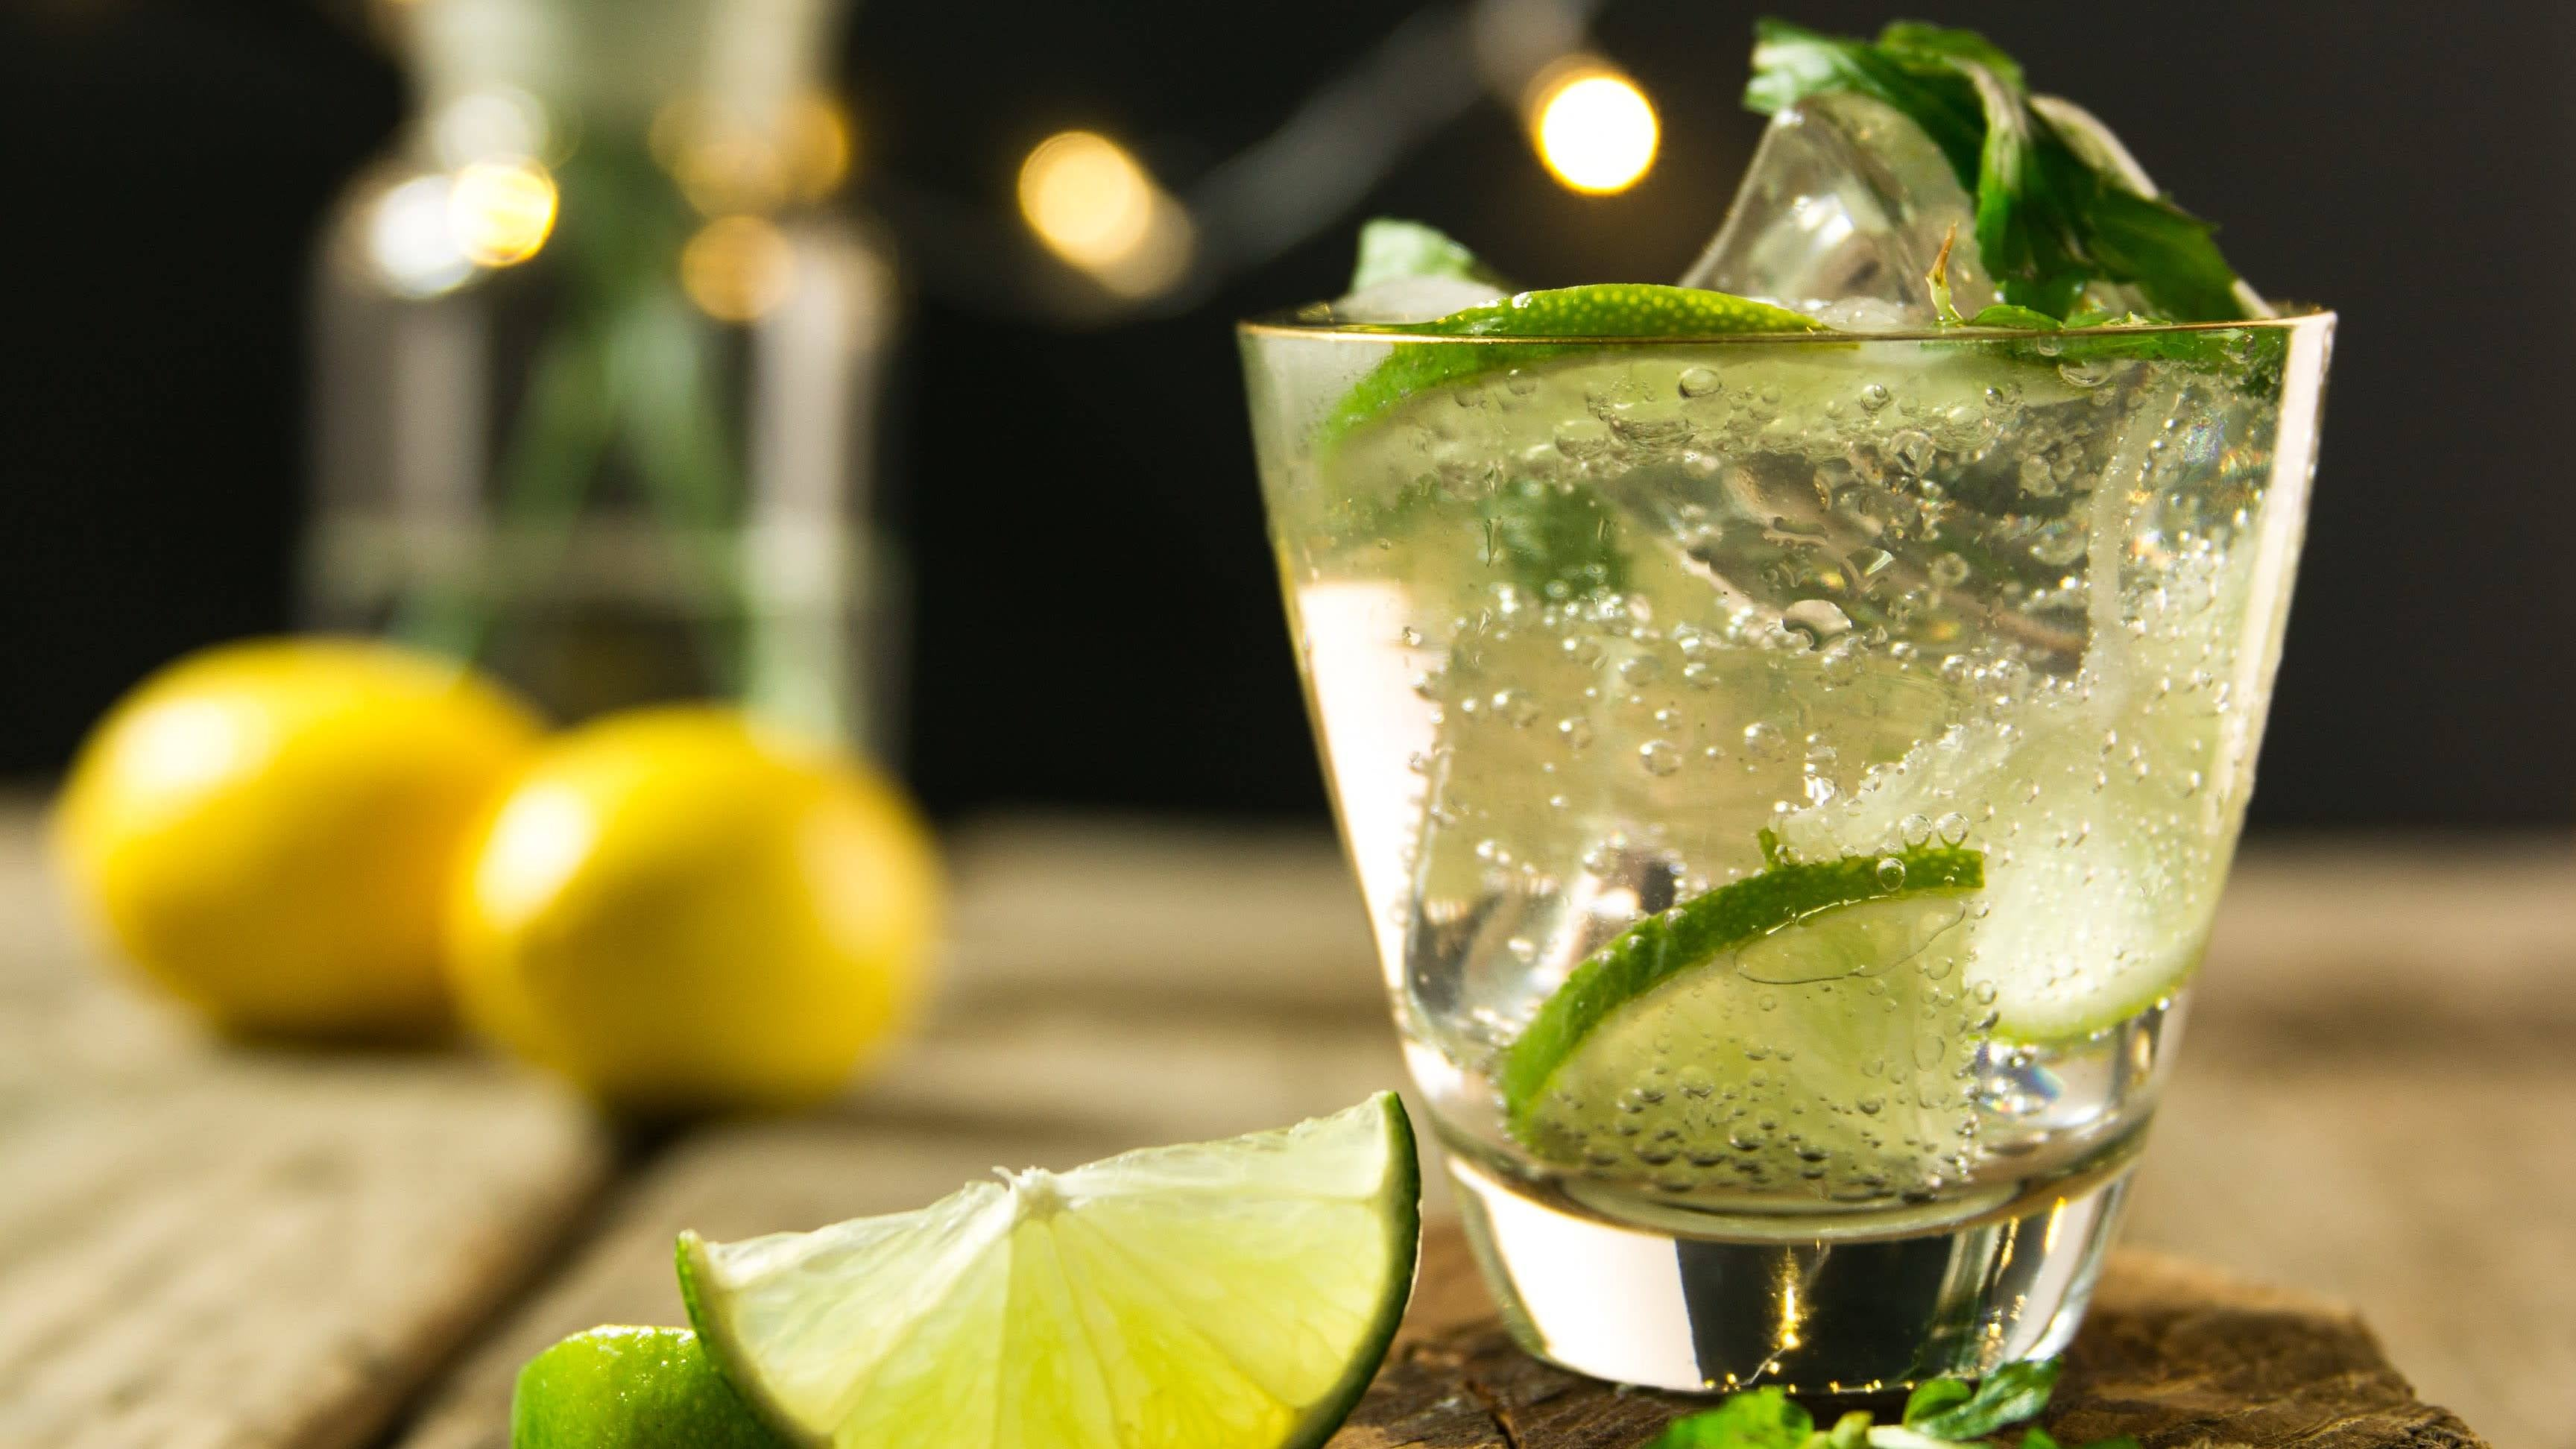 How To Choose Quality Tonic Water For Your G&T